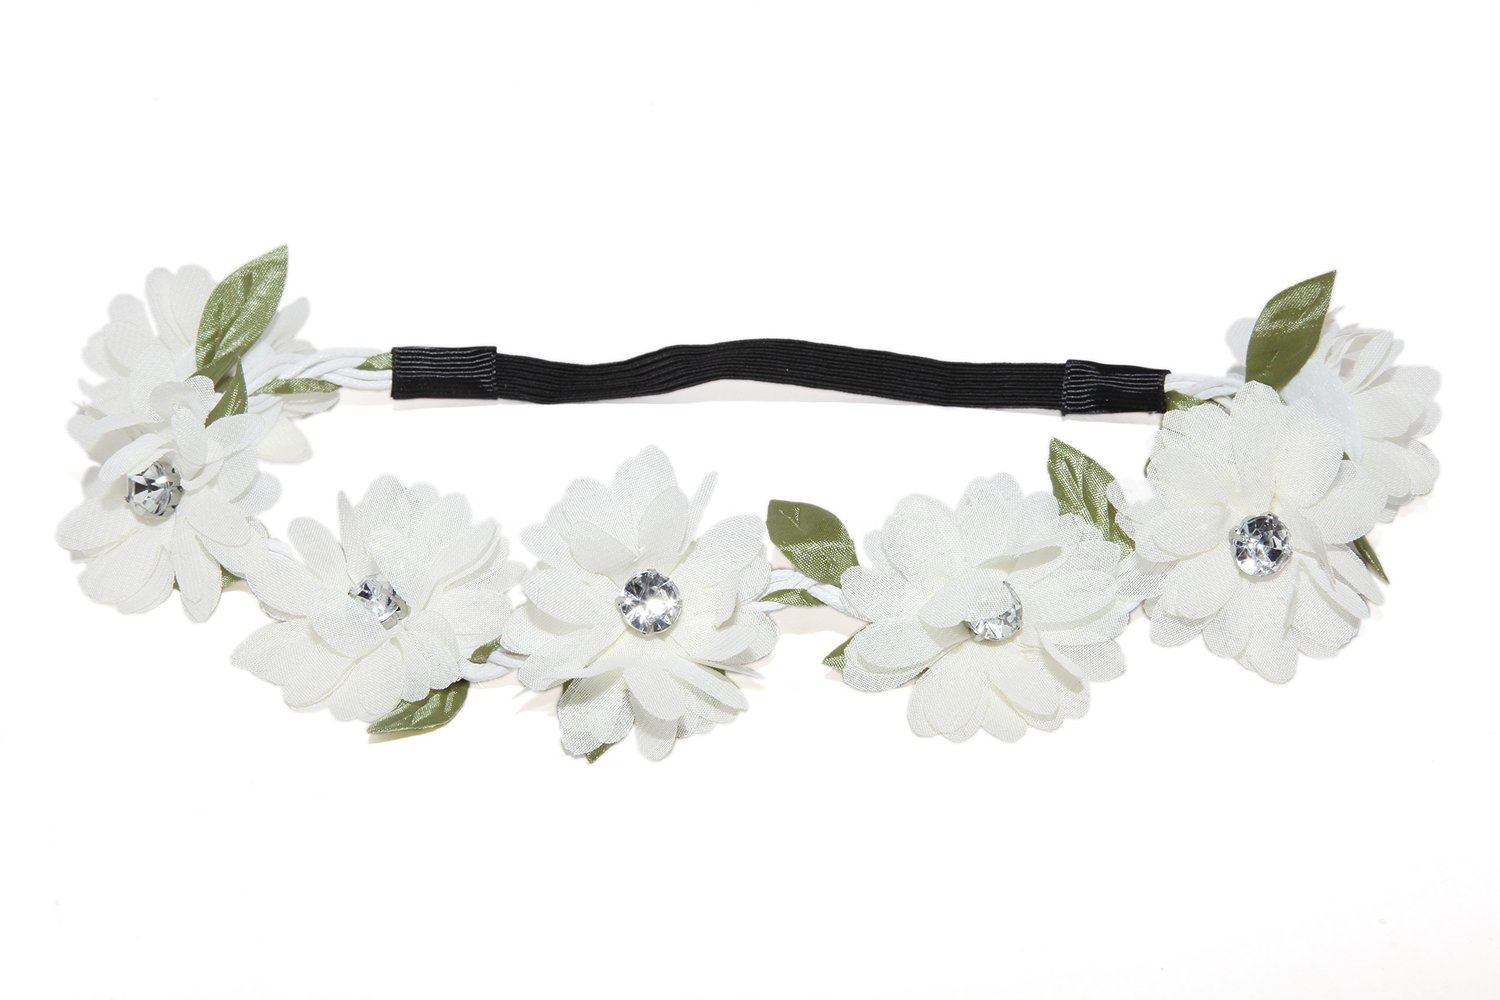 Amazon.com: Lux Accessories Full Bloom White Stretch Flower Green Leaf Coachella Floral Headband: Lux Accessories: Jewelry